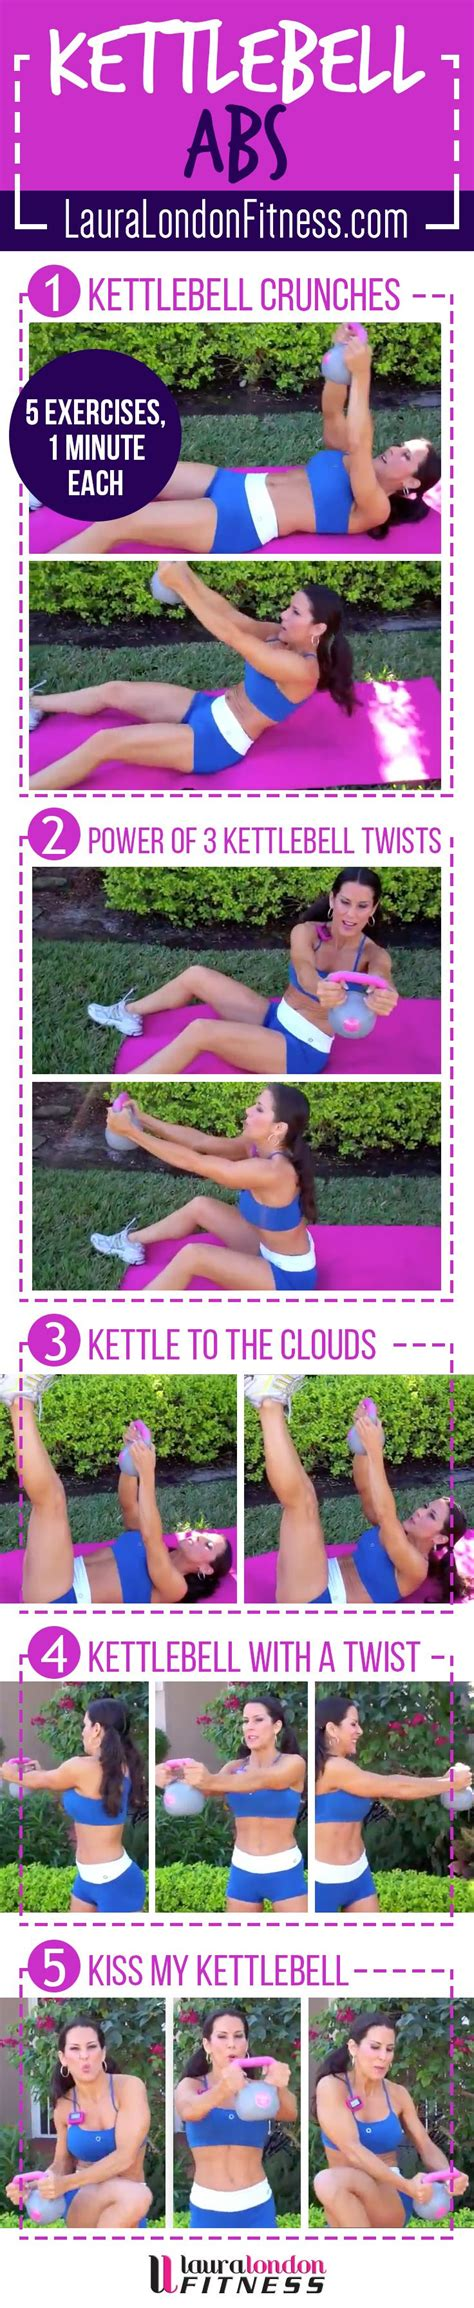 6 trainers favorite exercises for powerful kettlebell ab exercises to get flat stomach